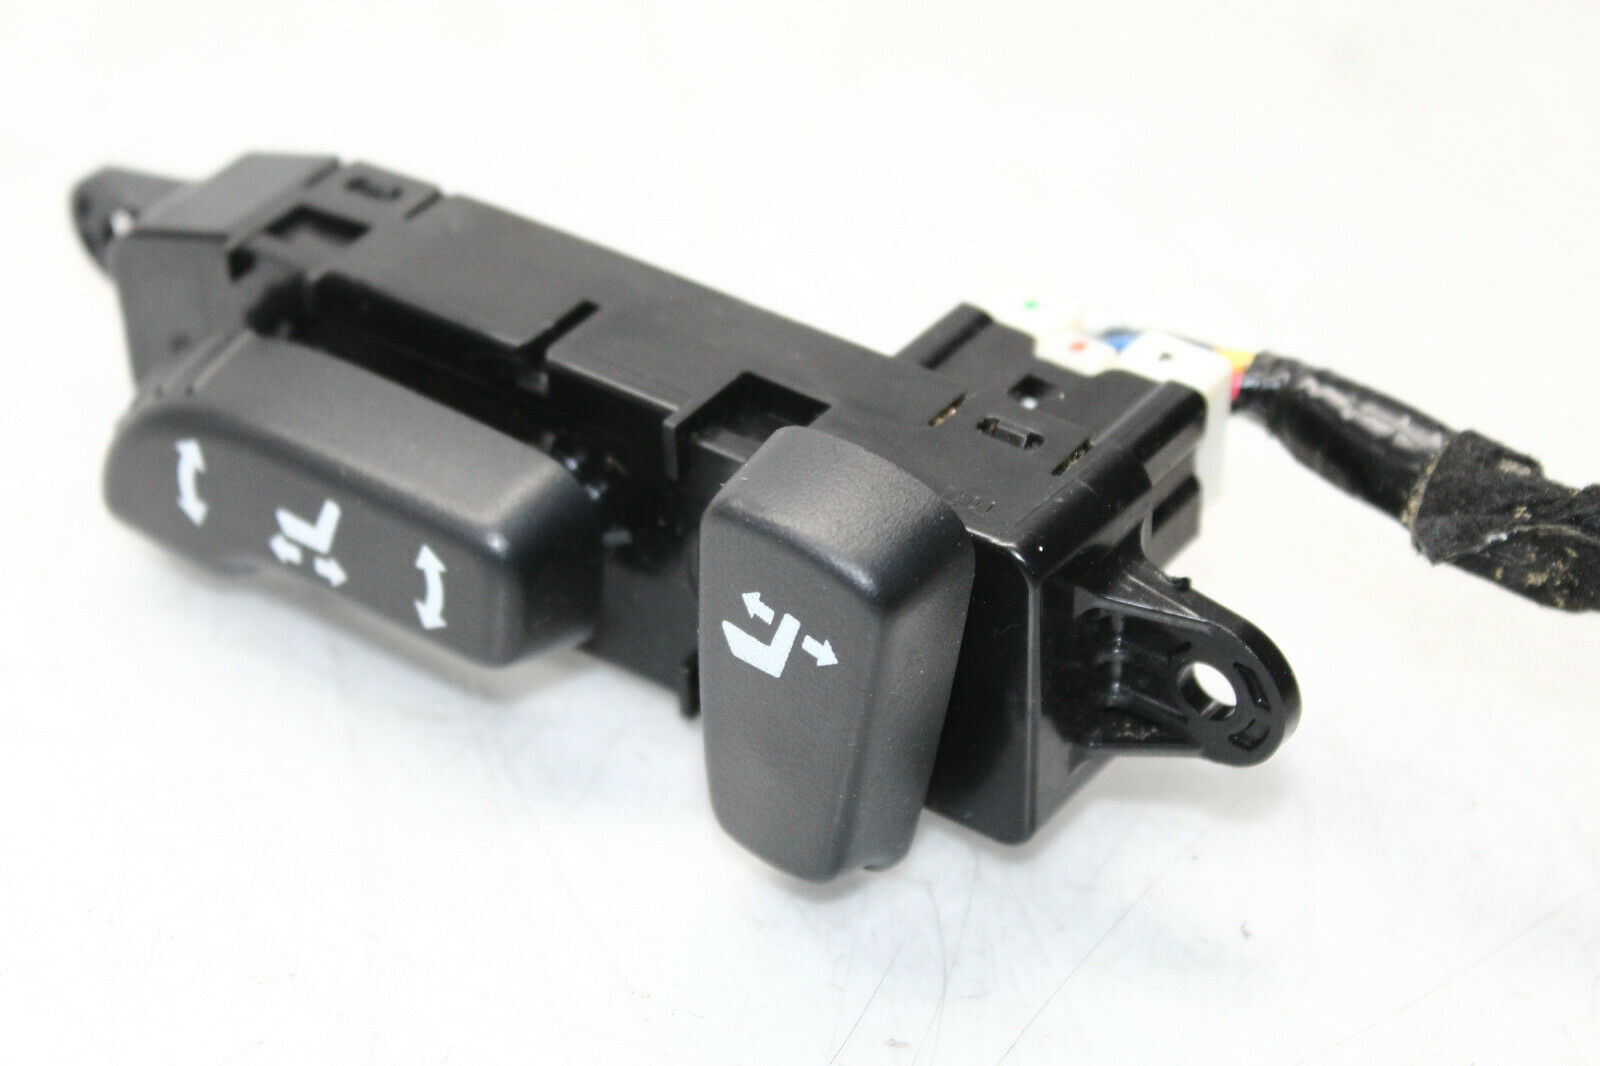 2008-2010 INFINITI G37 COUPE FRONT LEFT DRIVER SEAT ADJUSTMENT SWITCH P3852 - $53.89